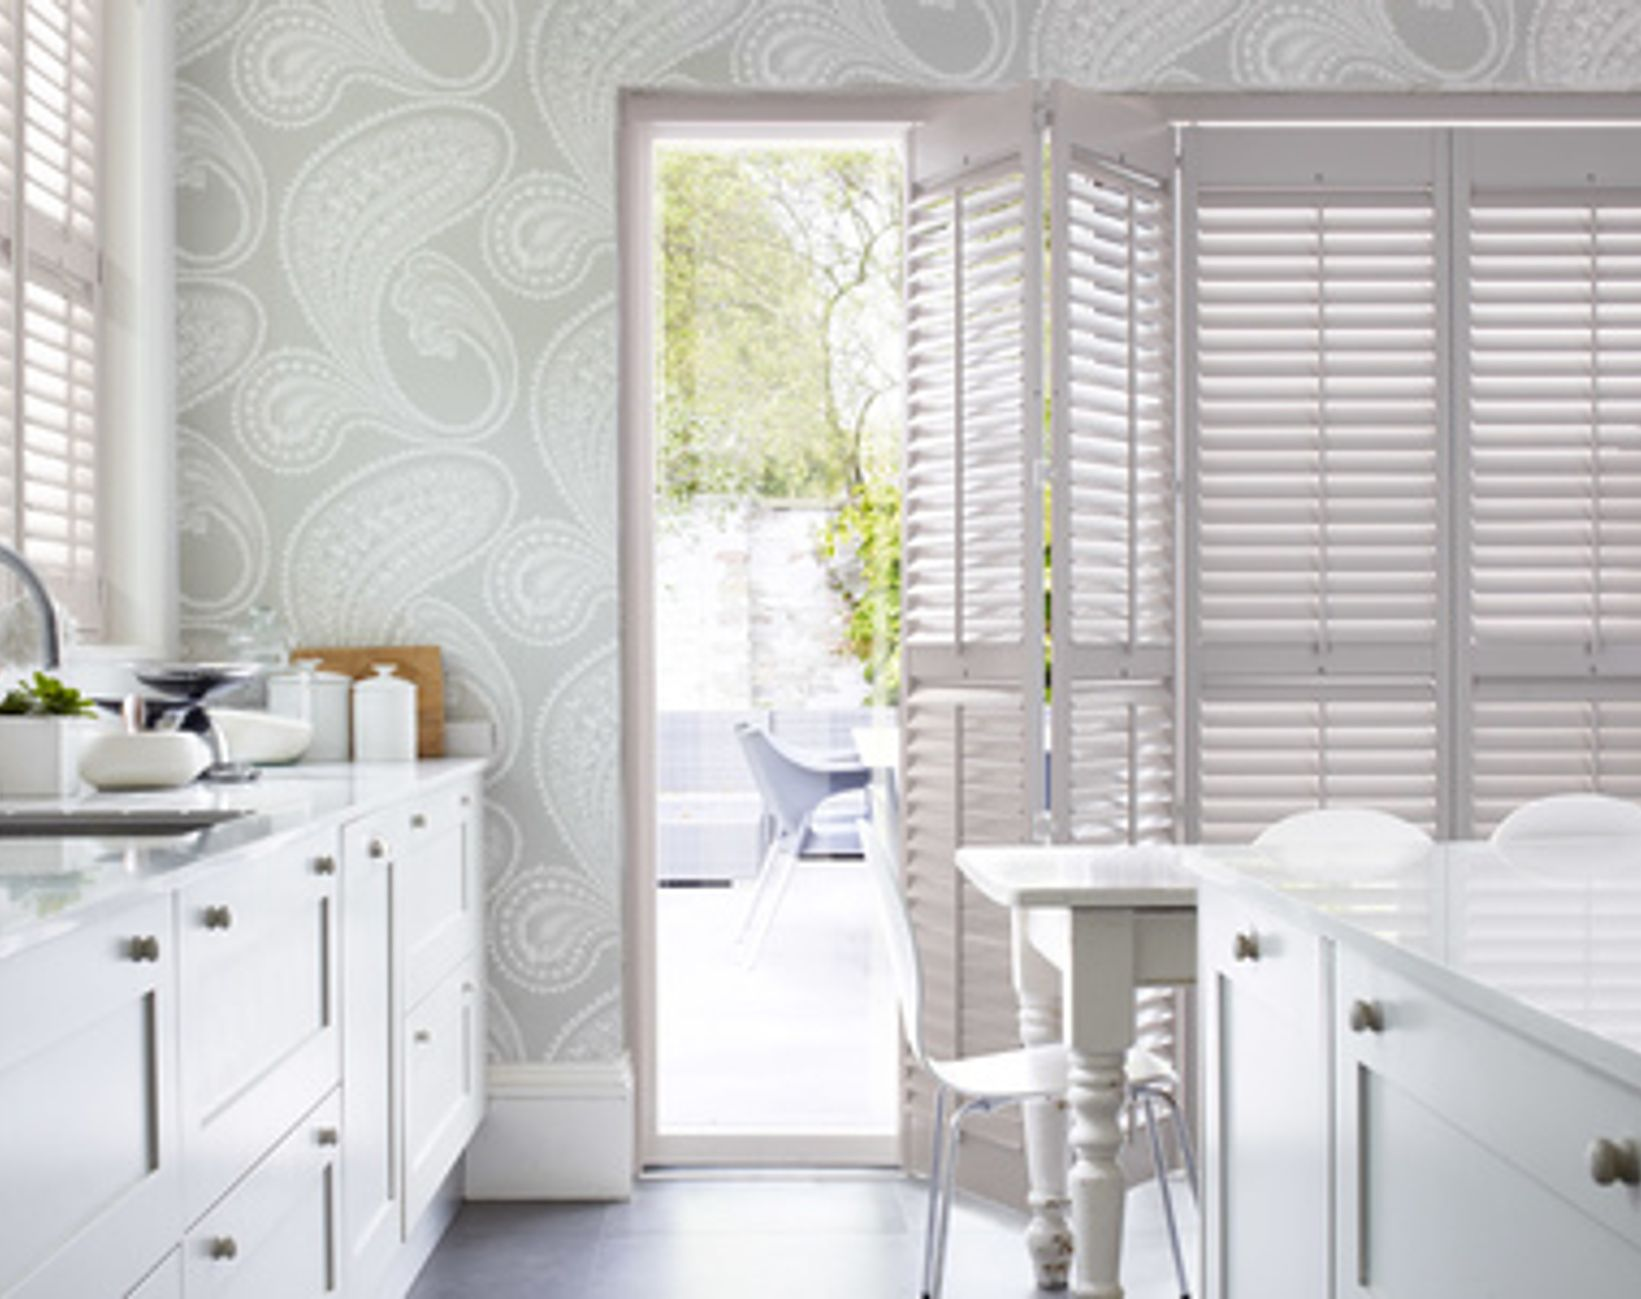 Full Height Shutters -